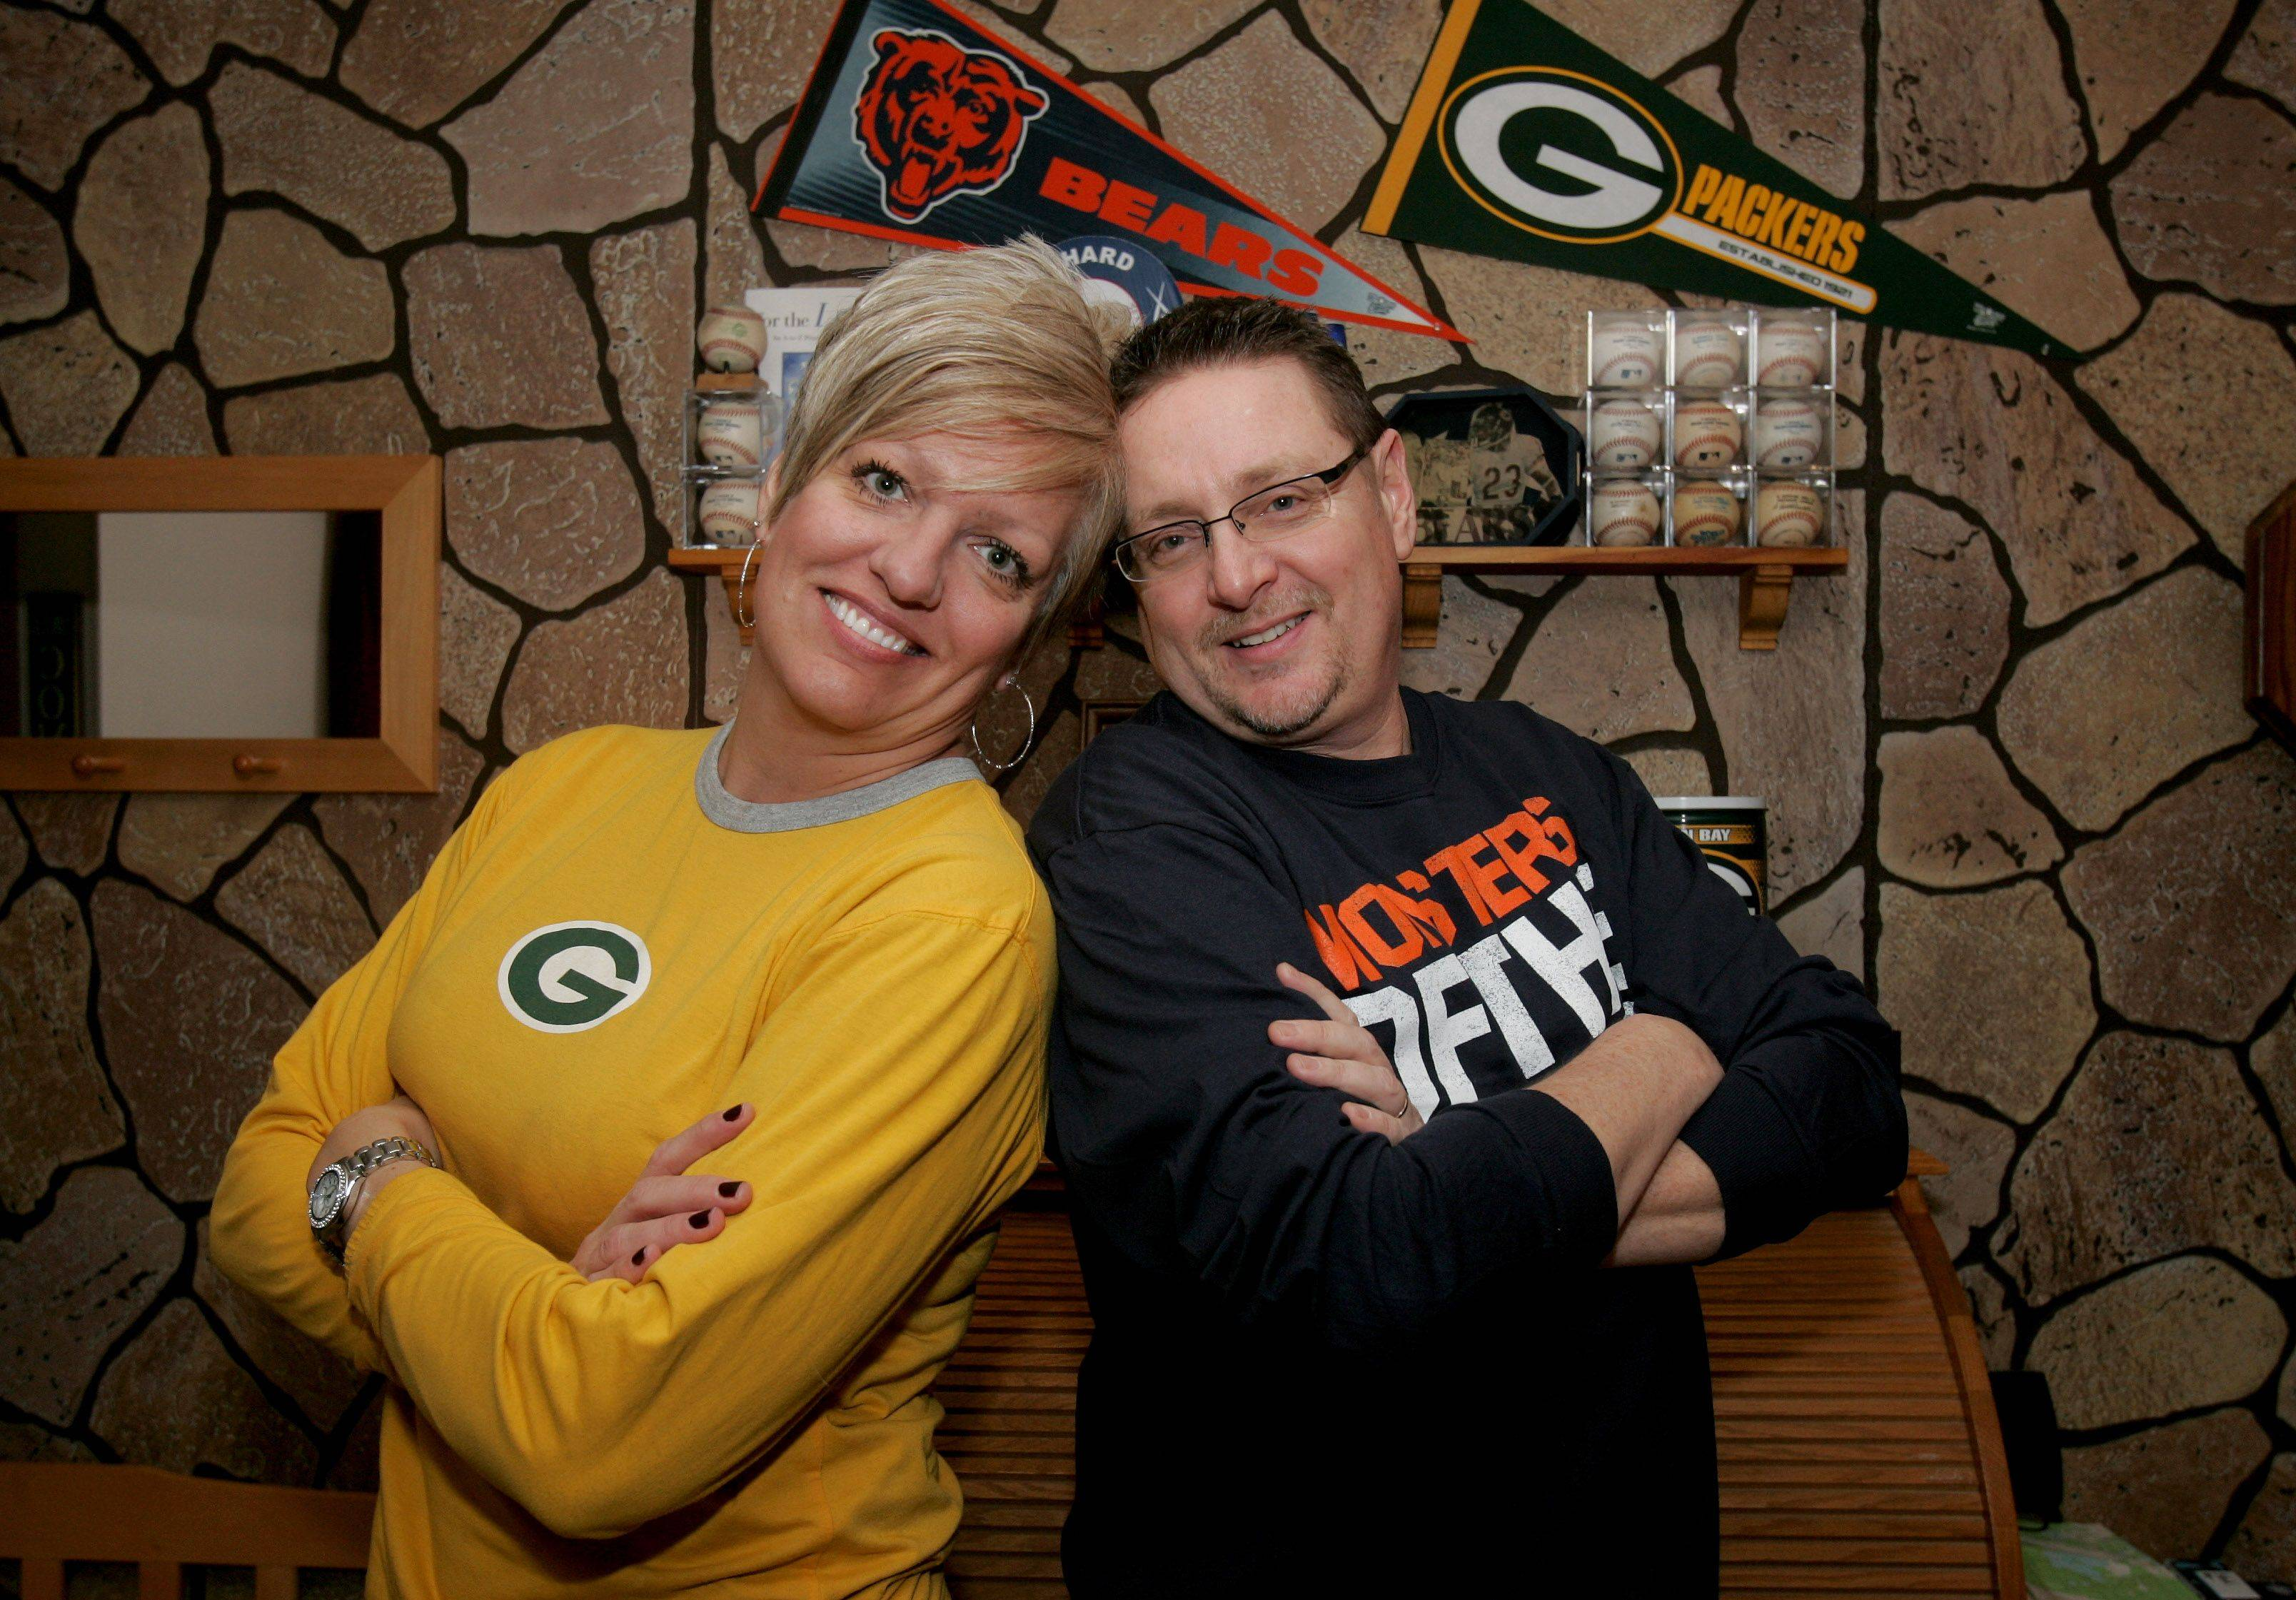 Bob and Lisa Bosma of Lombard will be rivals this weekend for the Chicago Bears vs. Green Bay Packers playoff game.